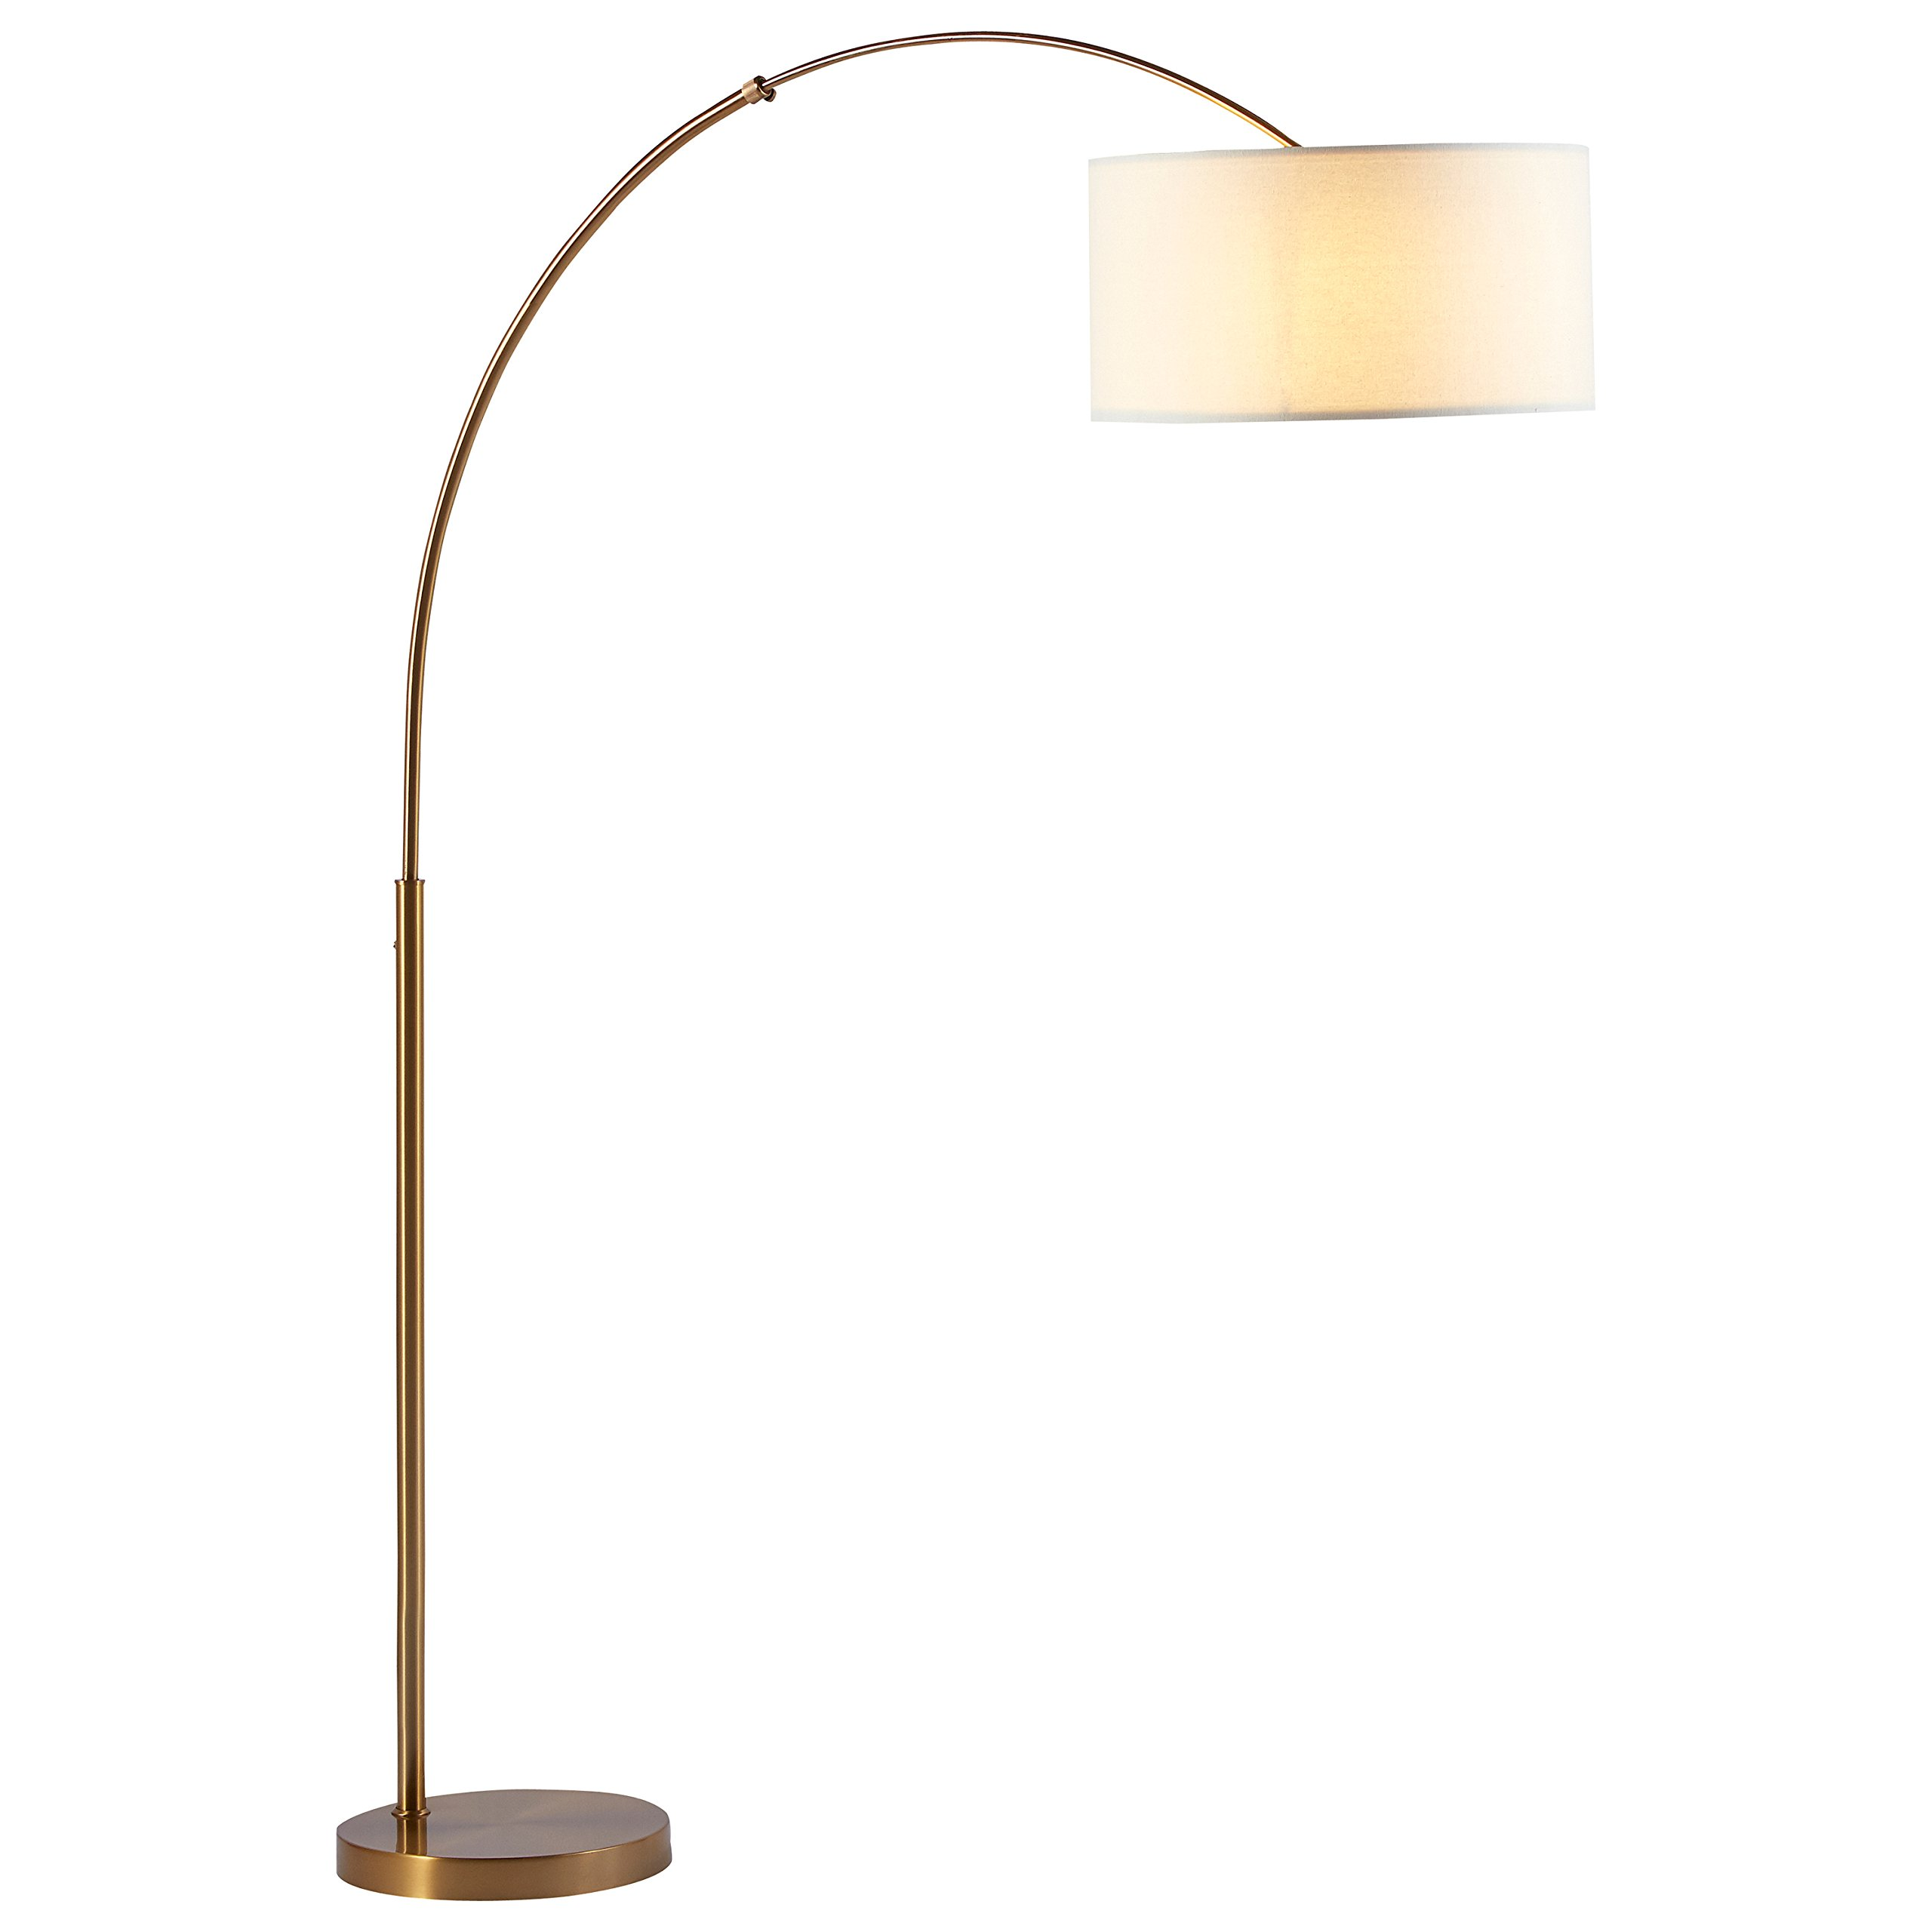 Rivet Brass Arc Floor Lamp, 76''H, With Bulb, Brass with Linen Shade